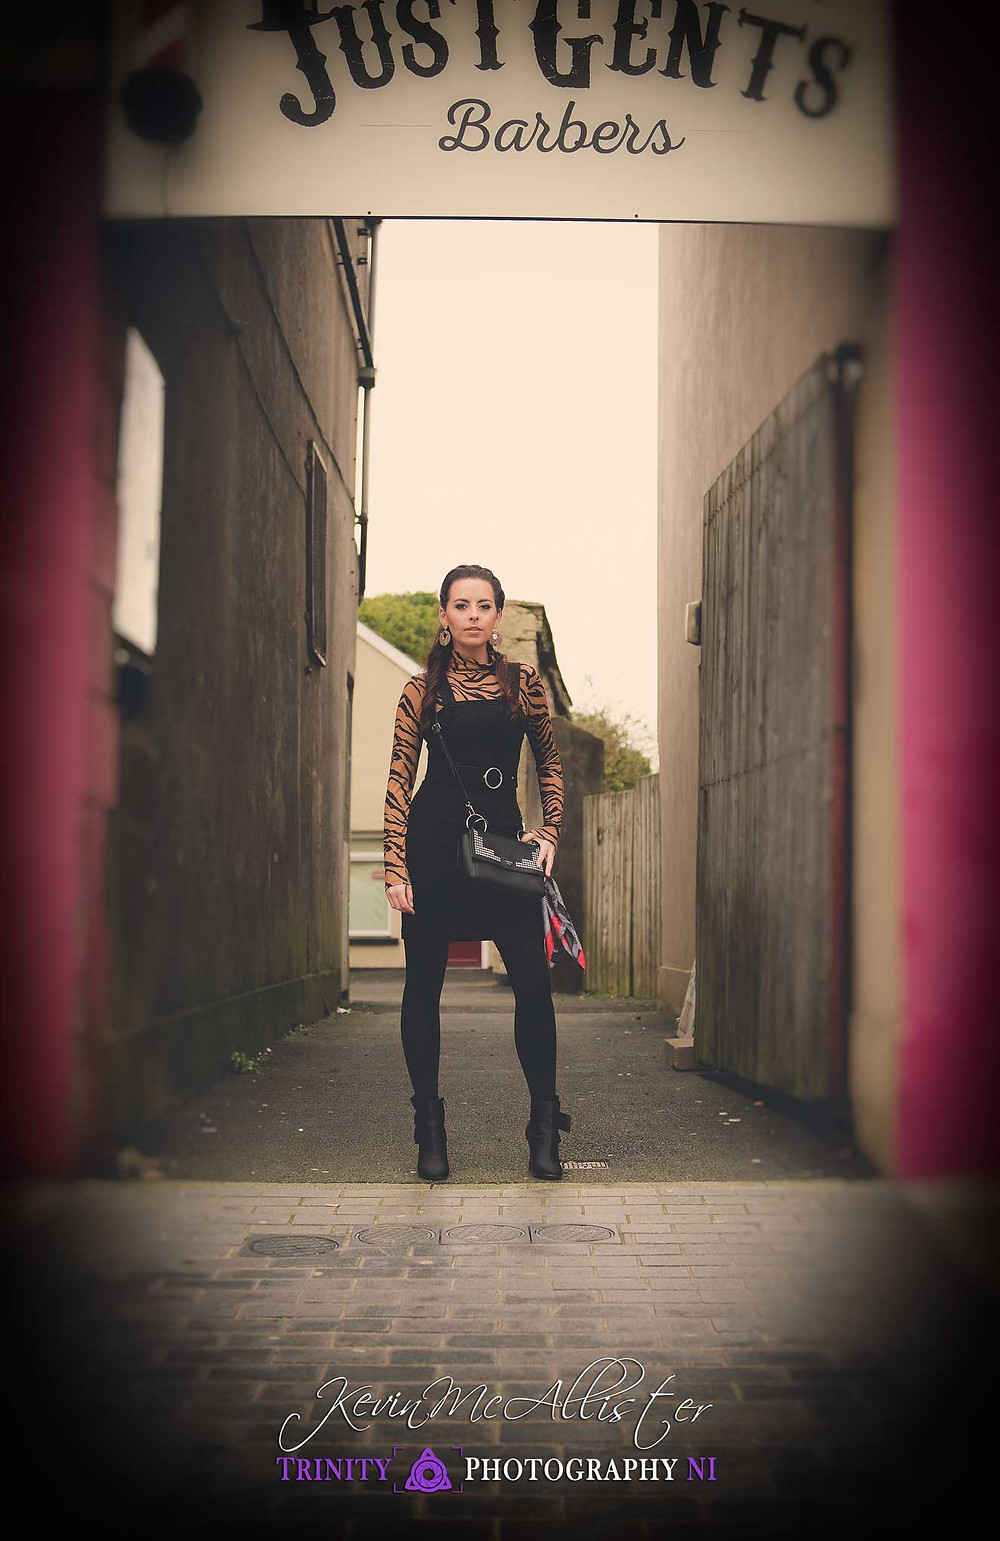 fashion style model in alley